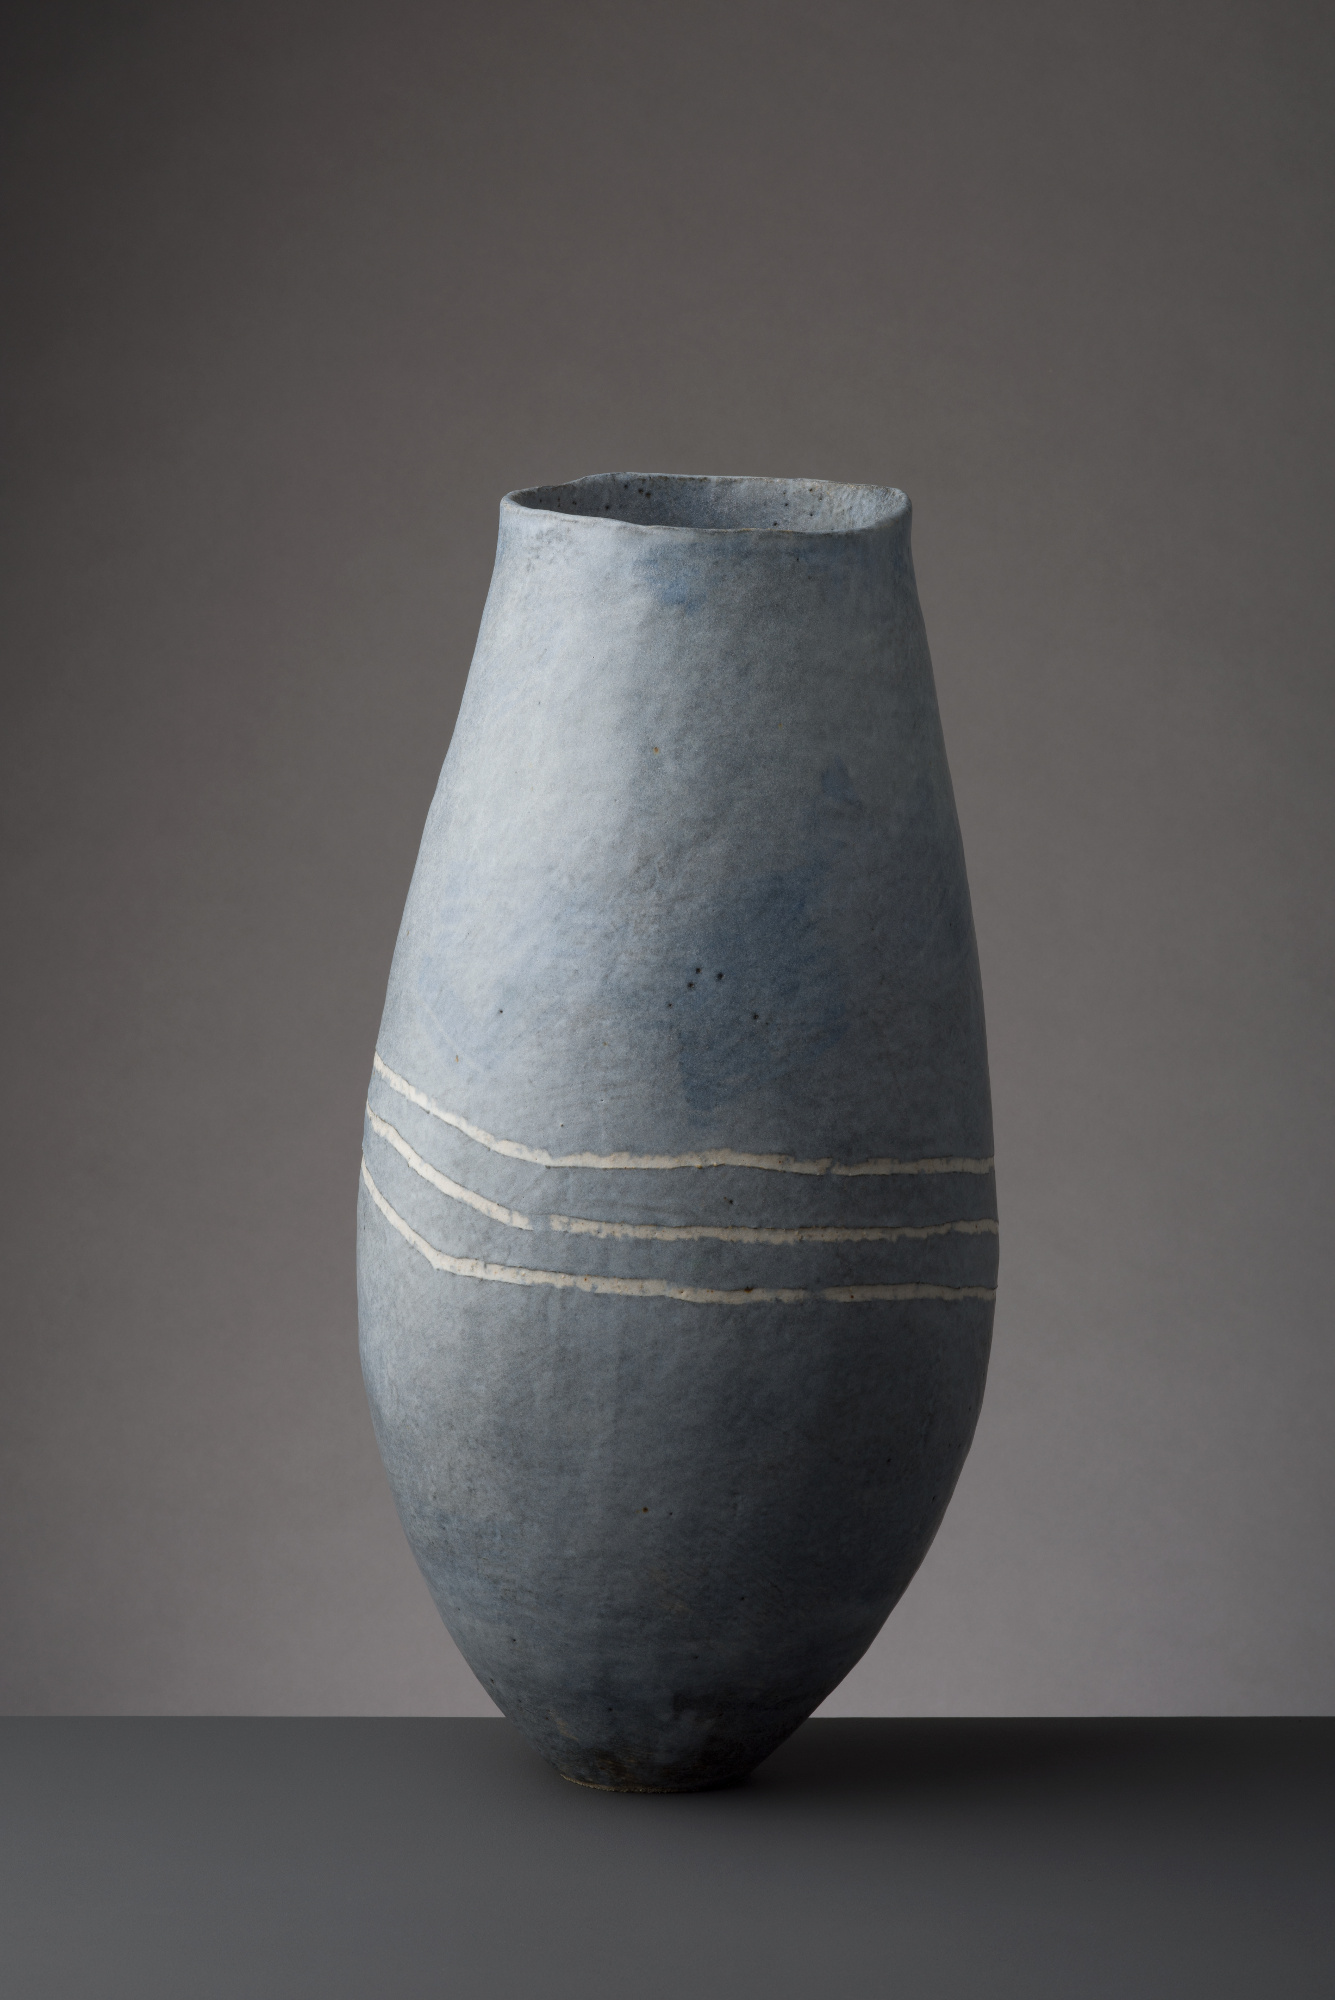 Tall Blue Vessel  Ceramic  46 x 20 x 19cm  £540